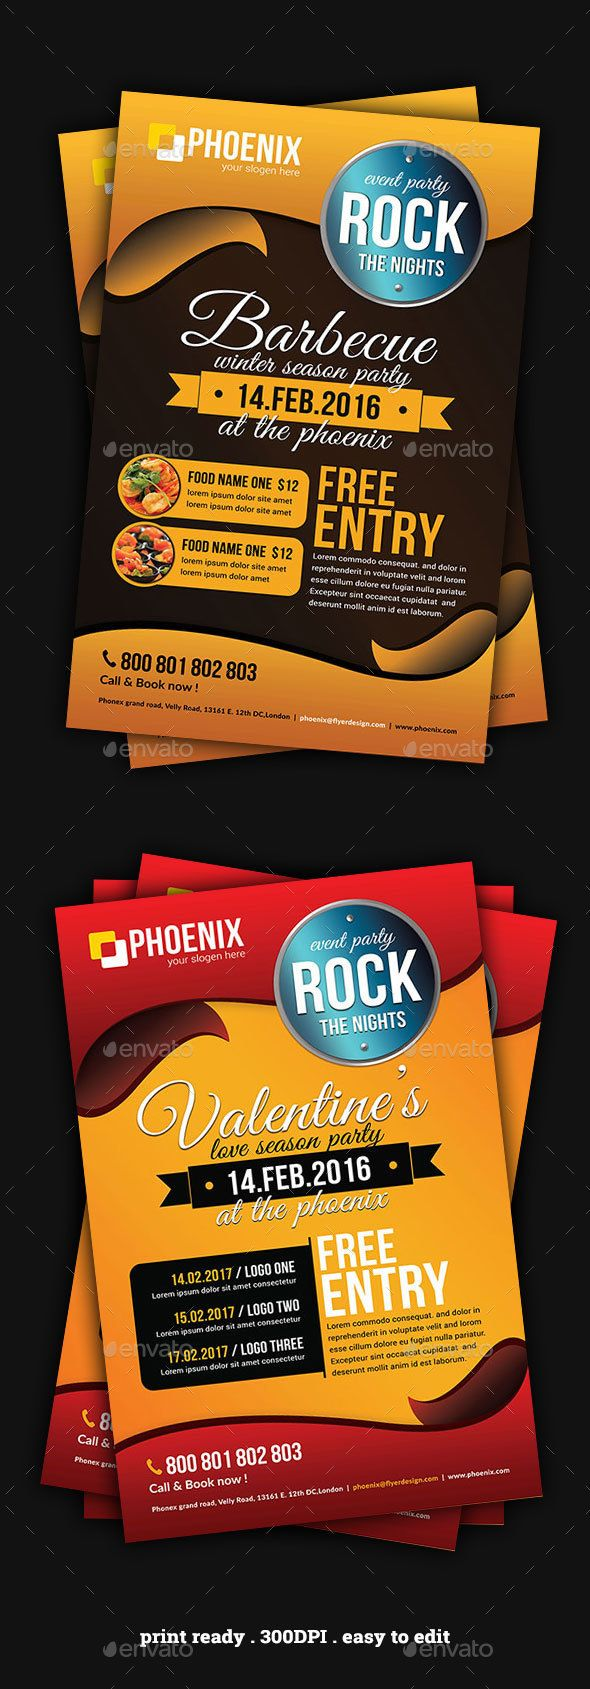 Event Multipurpose Flyer Template PSD. Download here: http://graphicriver.net/item/event-multipurpose-flyer/14845402?ref=ksioks